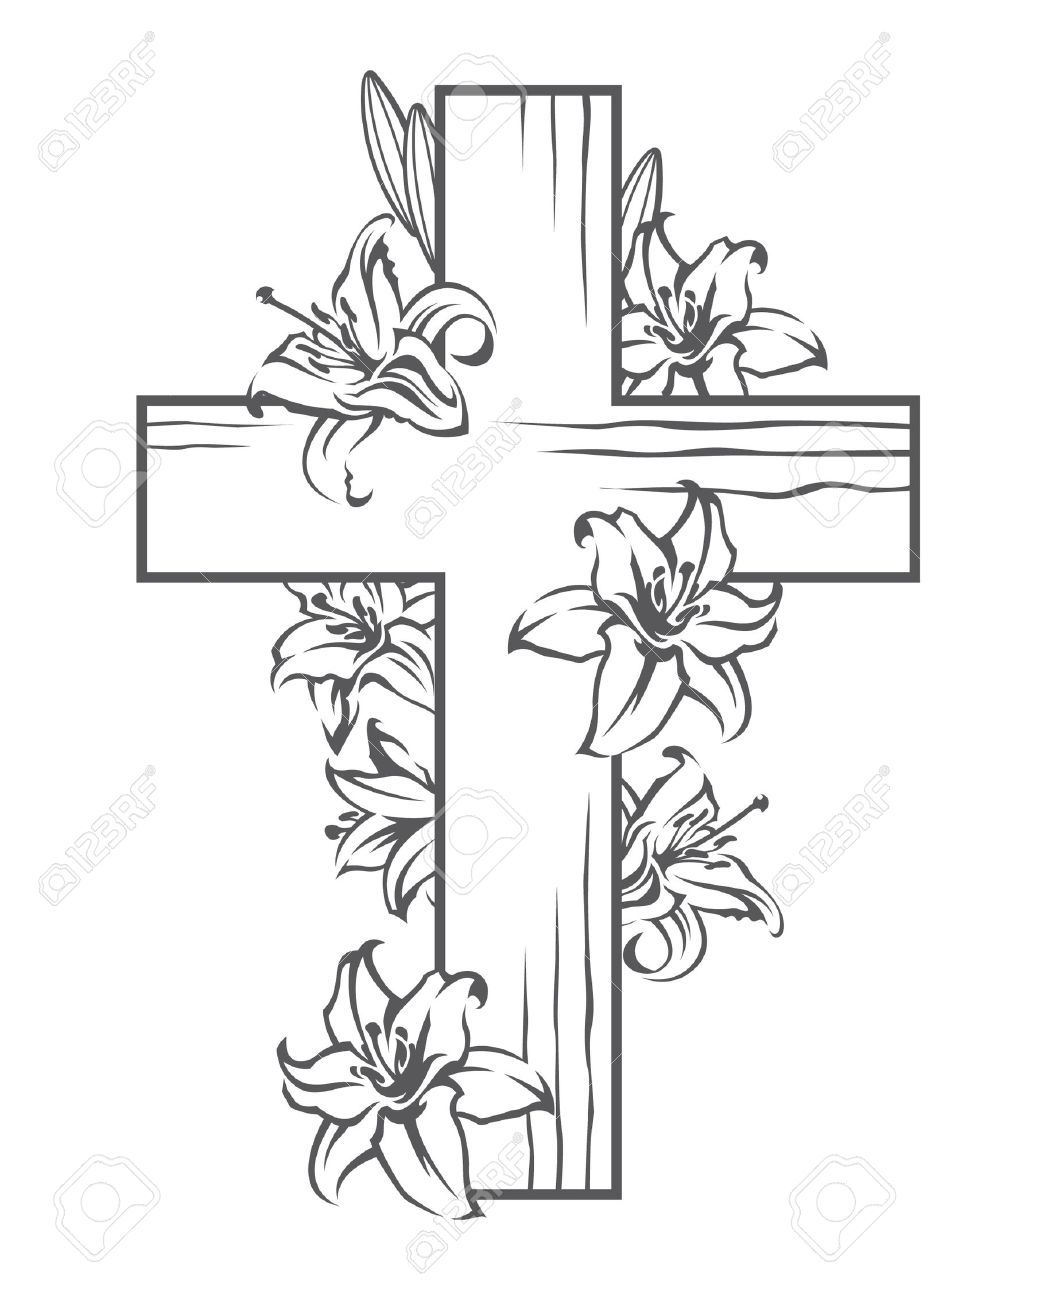 Cross and flowers clipart black and white 4 » Clipart Portal.